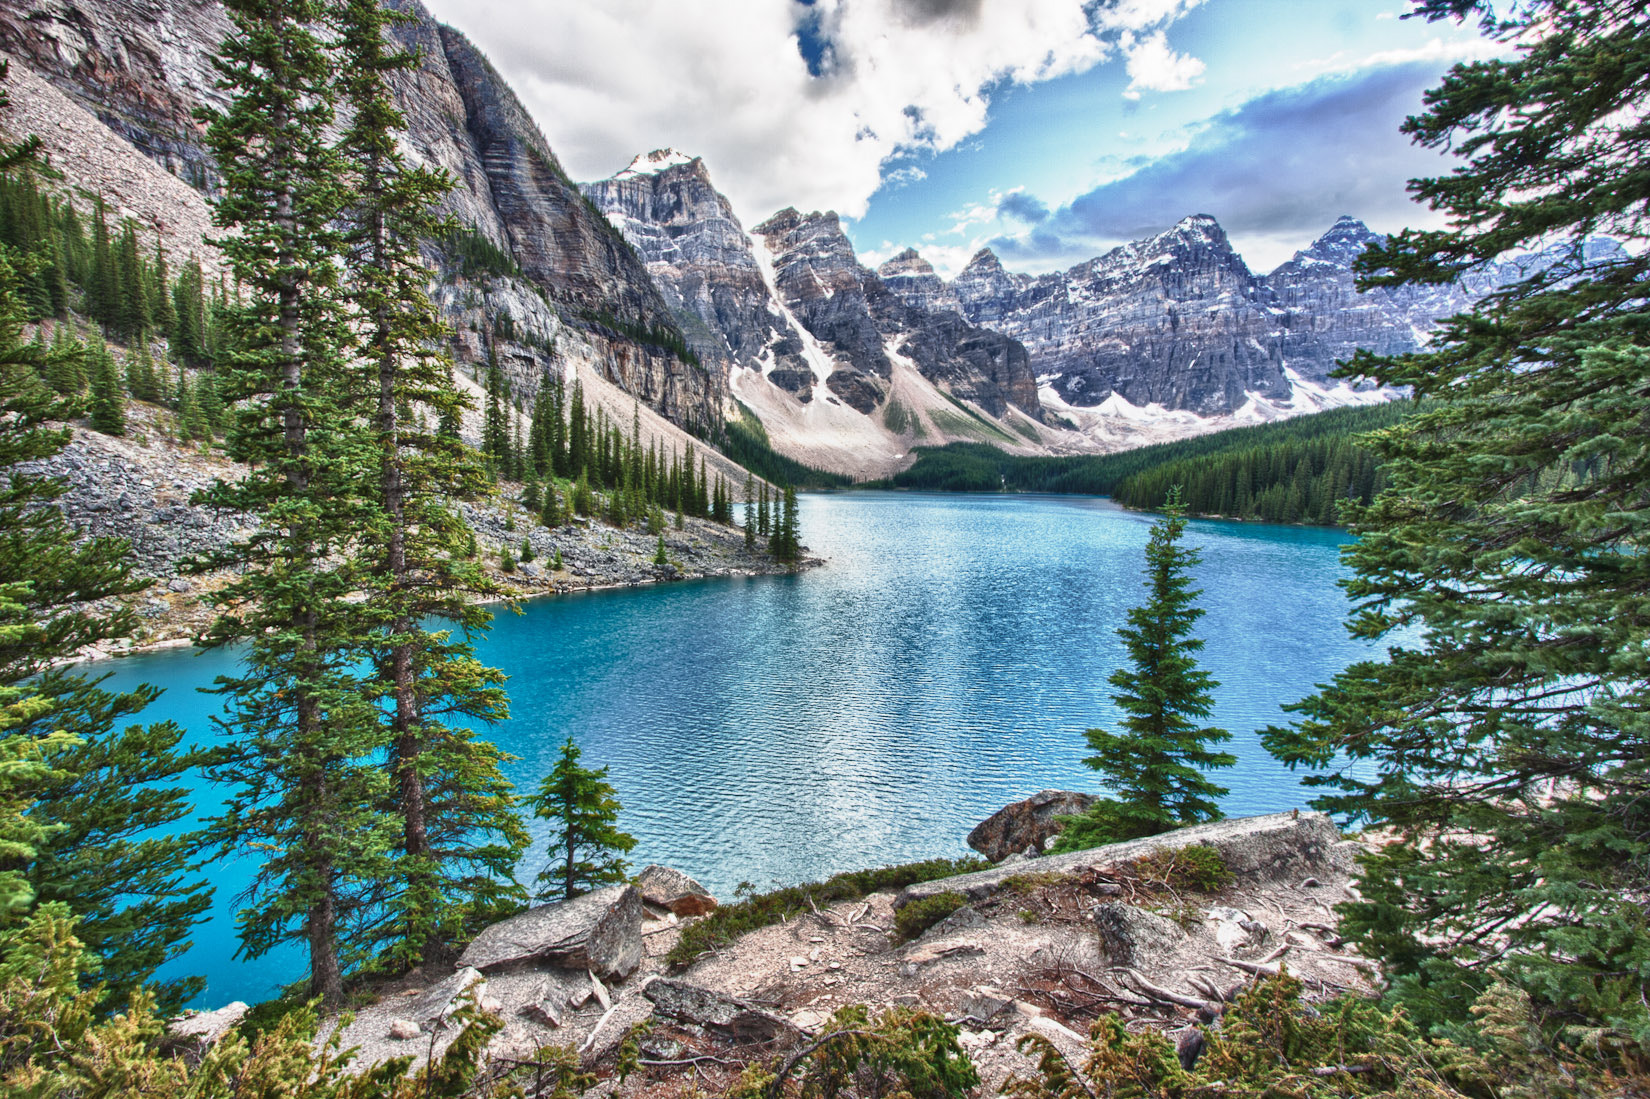 Photograph Moraine Lake by Dmitry Zaslavsky on 500px